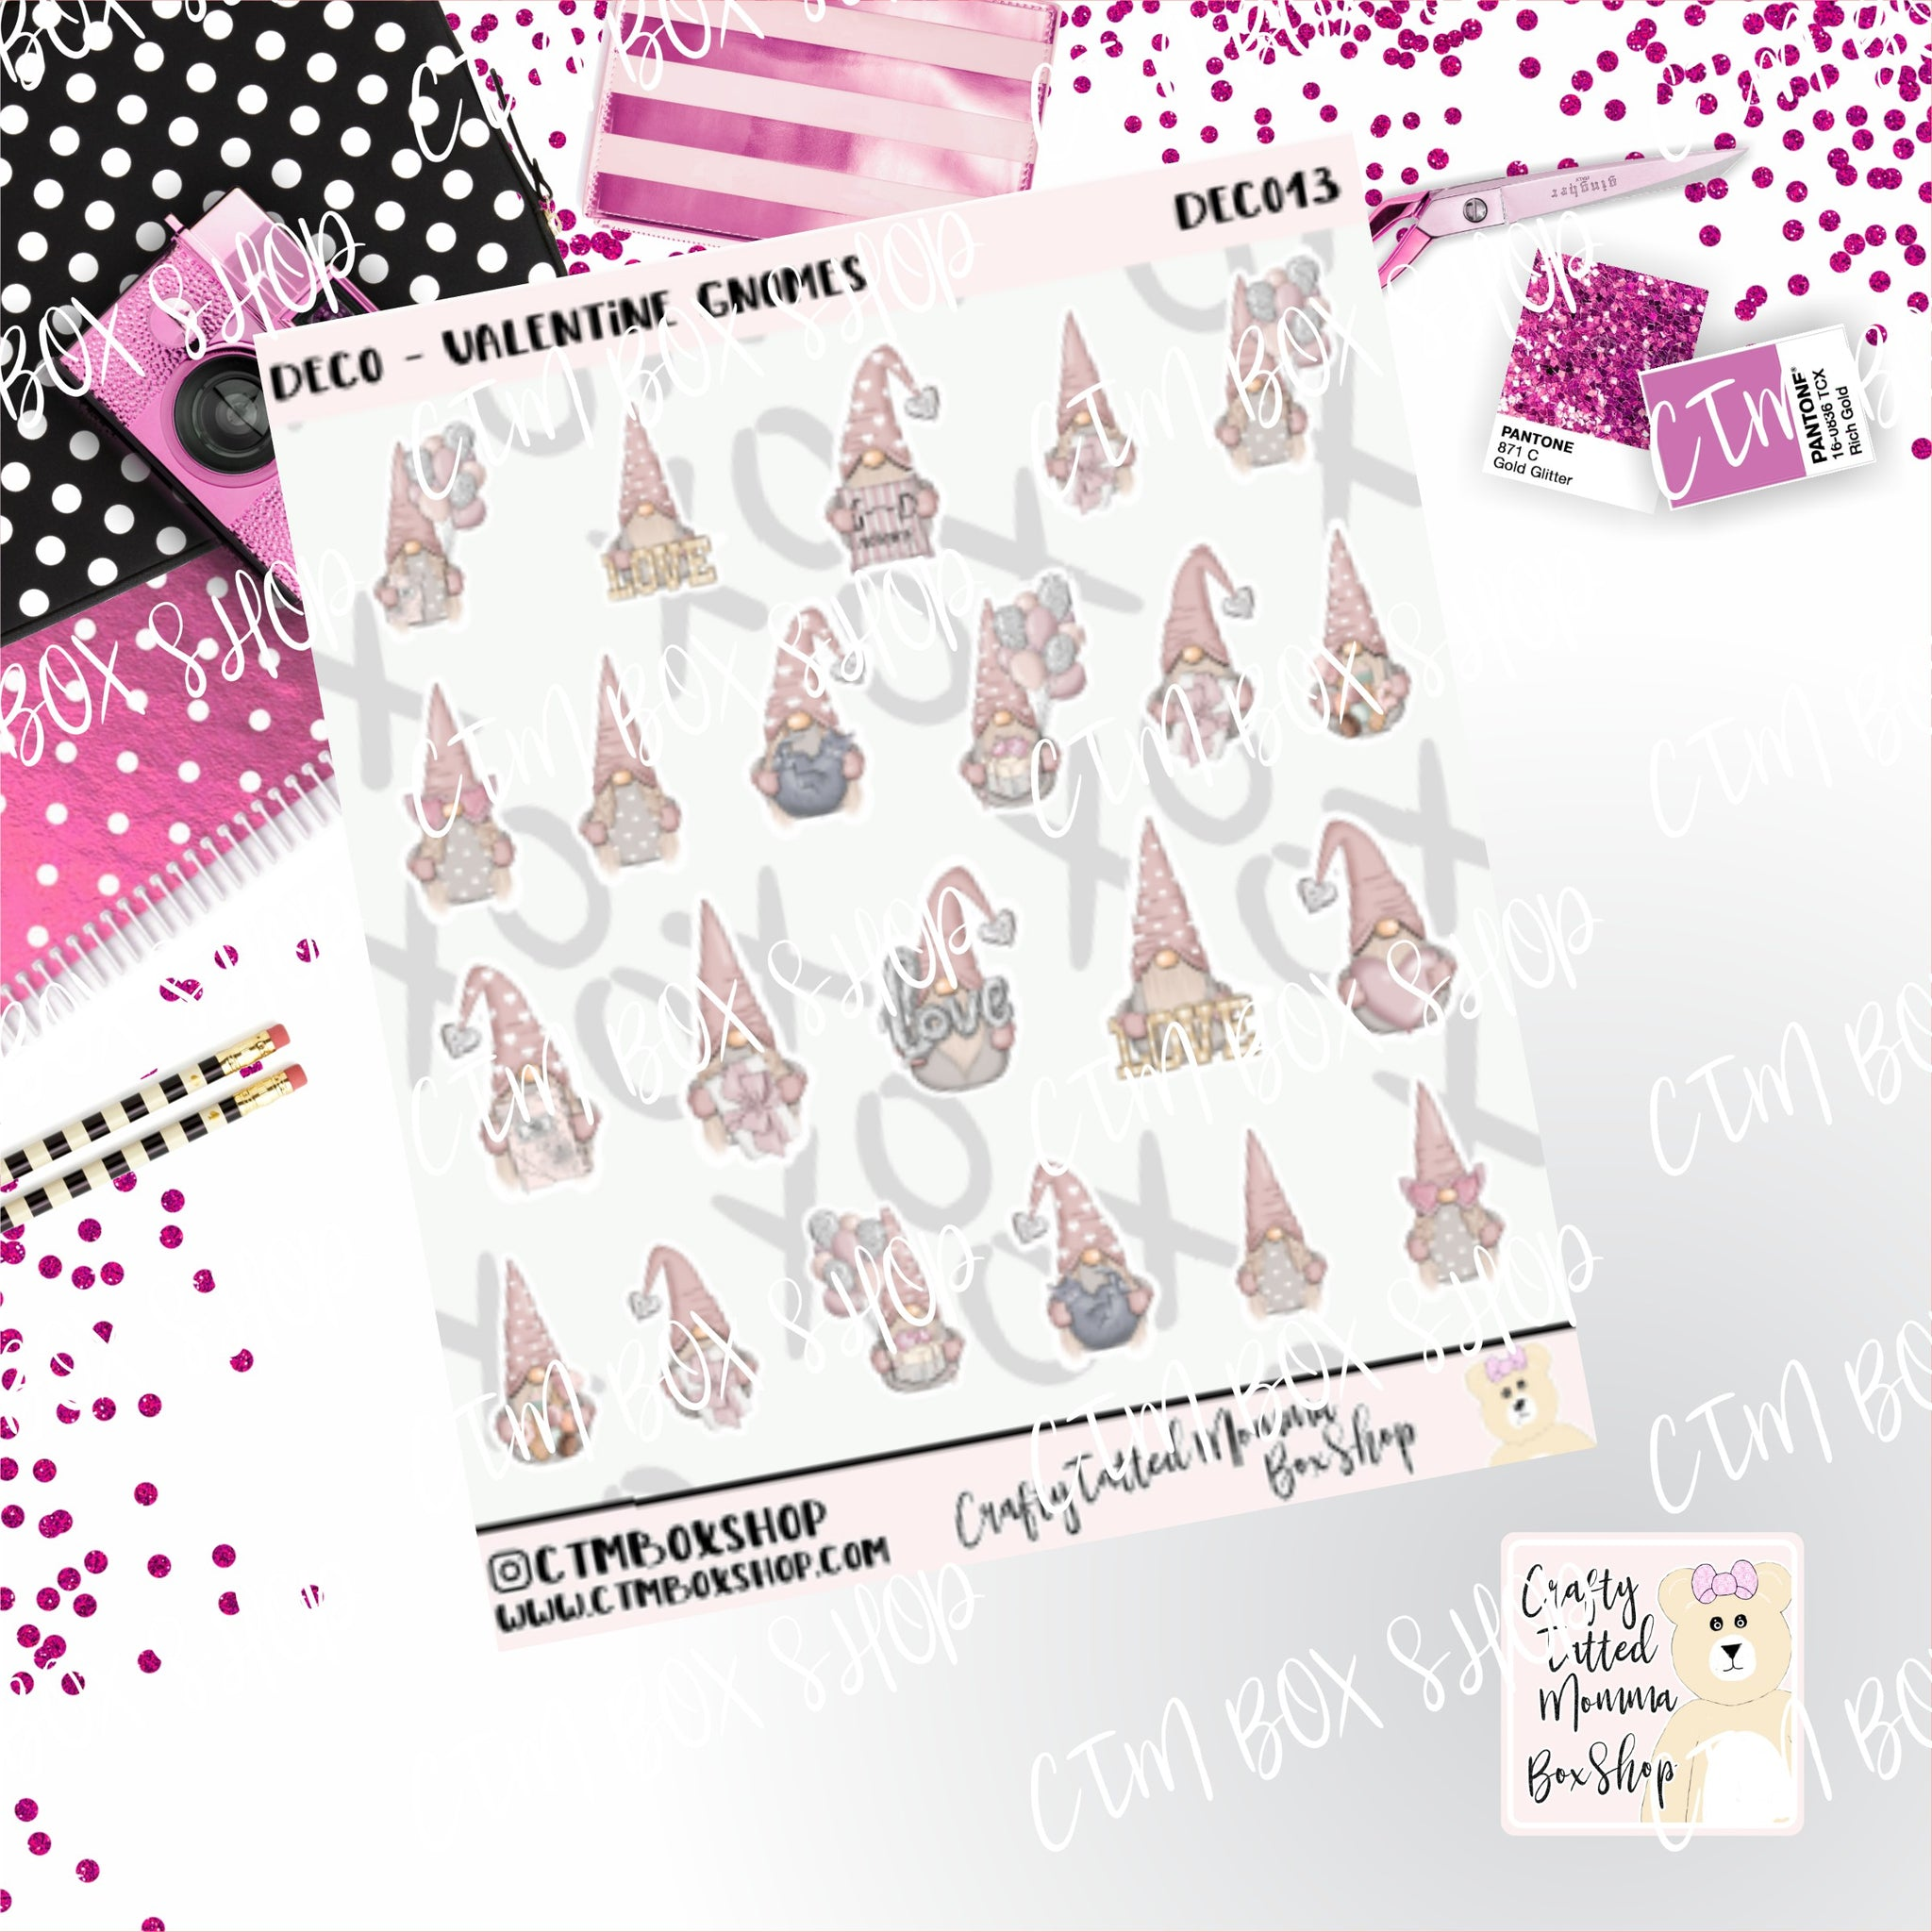 Valentine Gnomes Stickers, Planner Stickers,  Functional Stickers   Deco Stickers Character Stickers